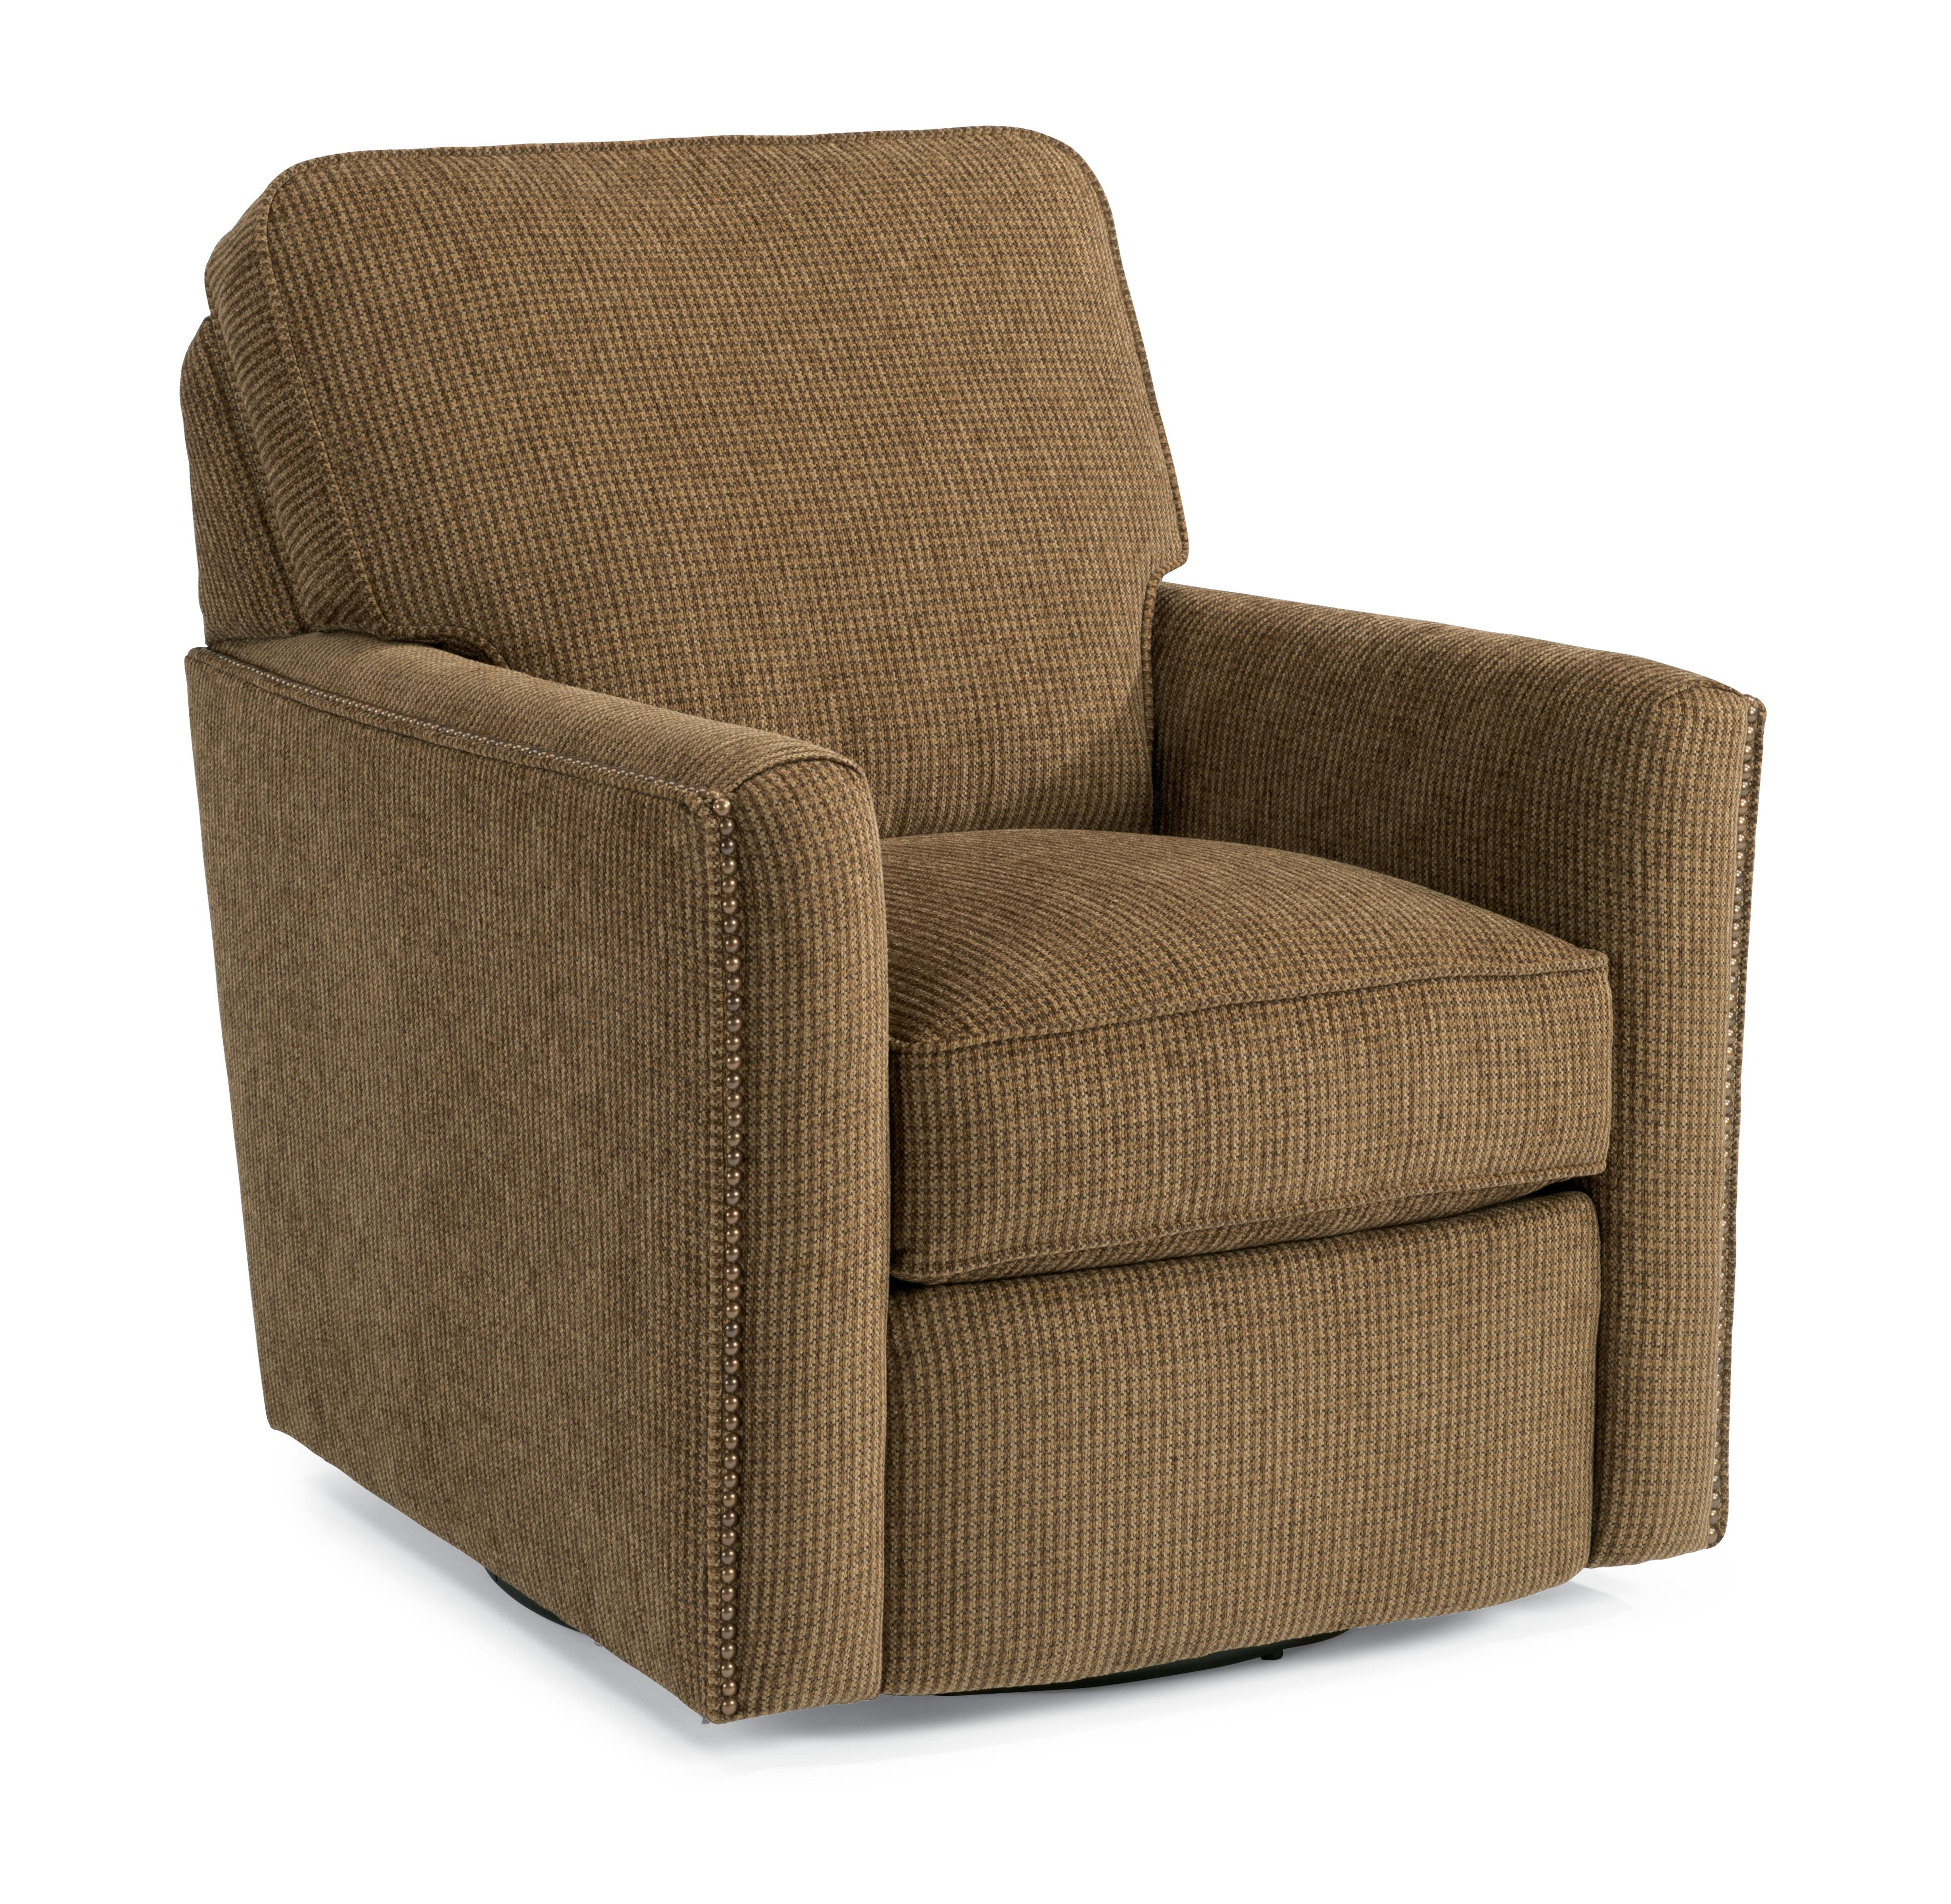 Accents Swivel Chair by Flexsteel at A1 Furniture & Mattress